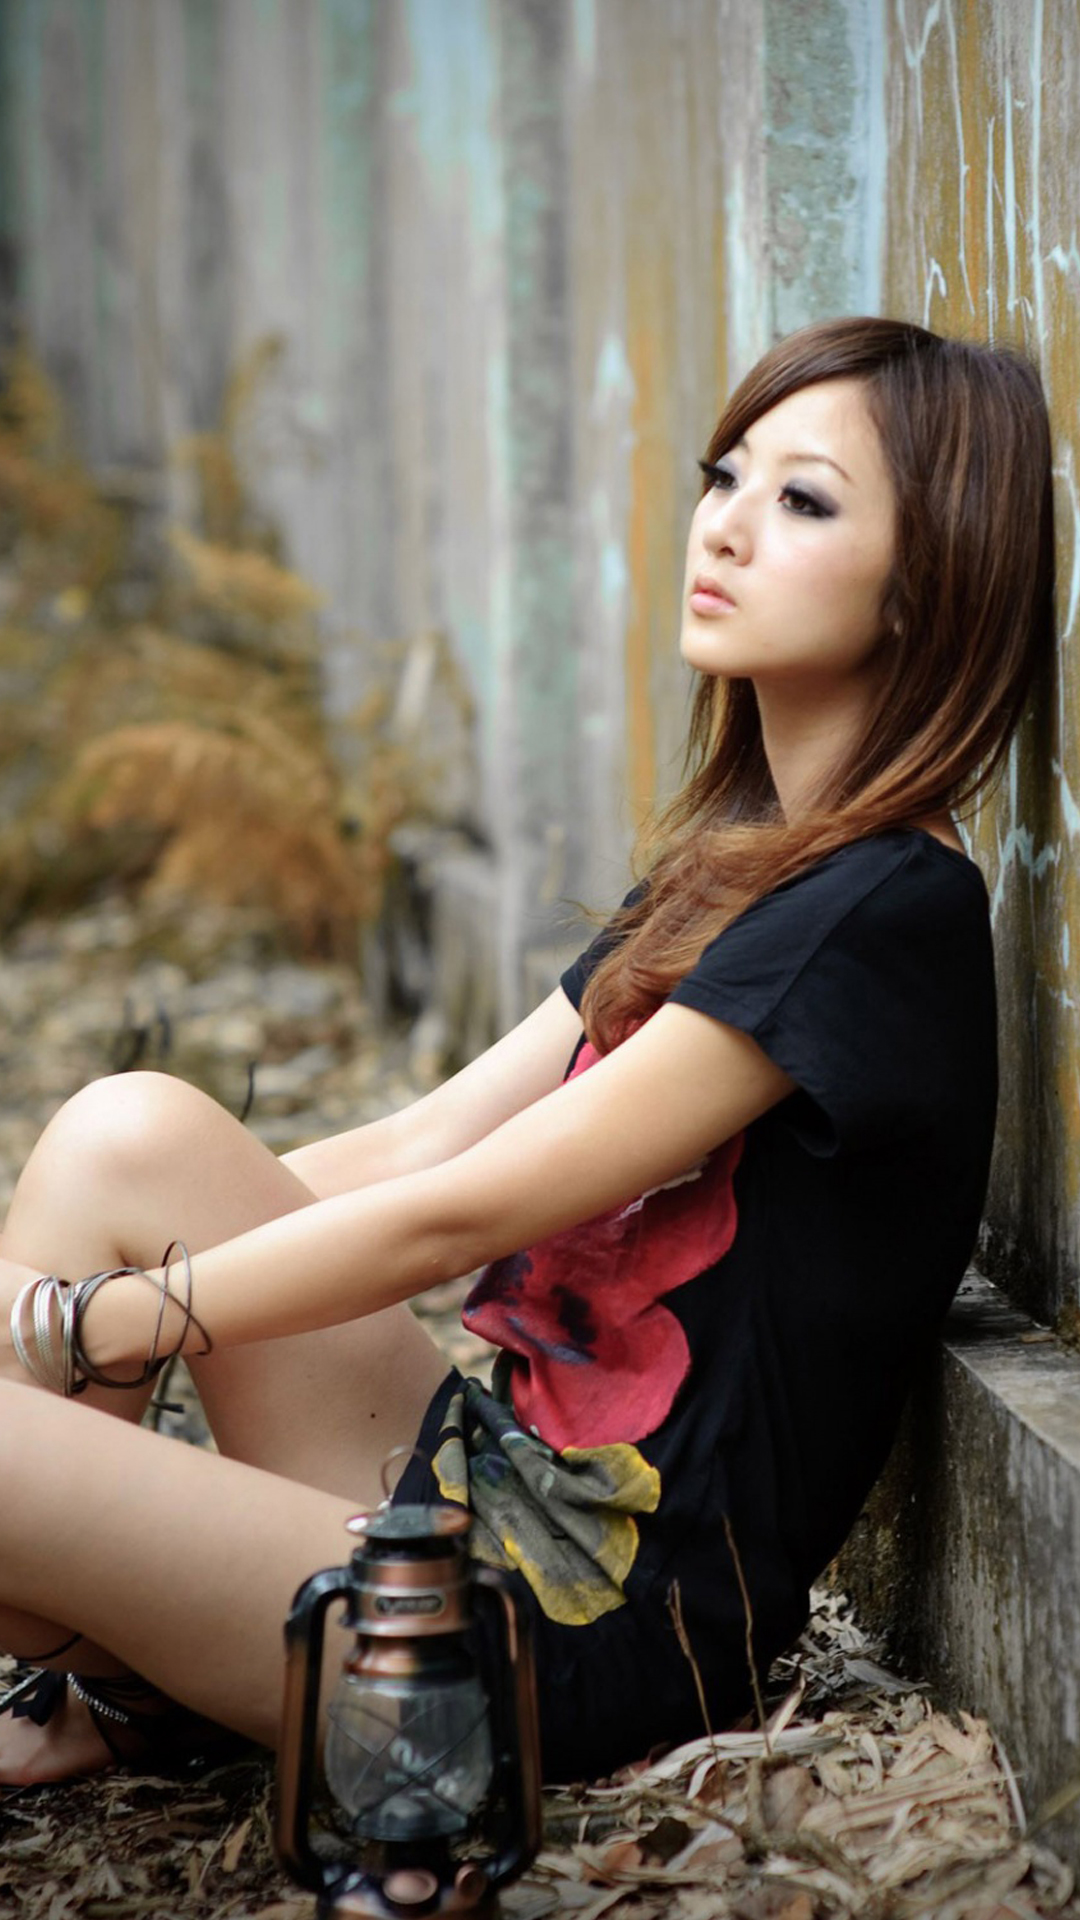 Sitting Pose For Girl , HD Wallpaper & Backgrounds